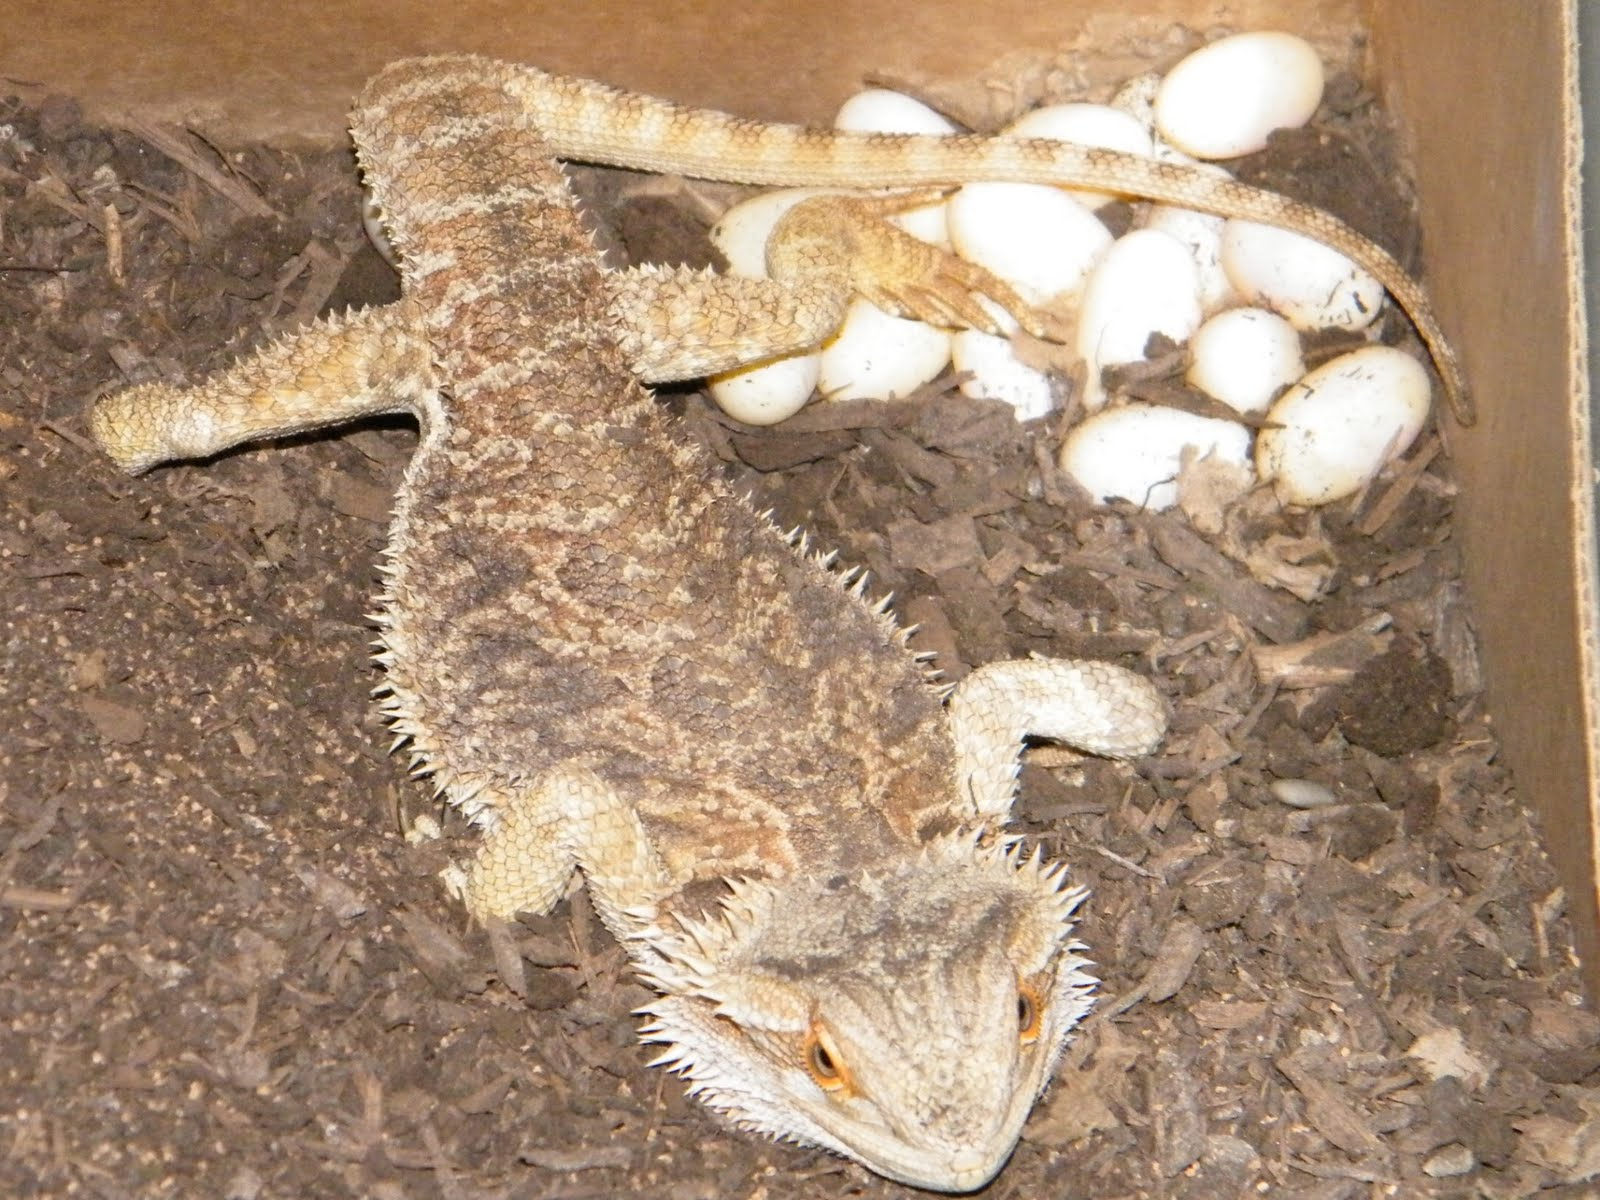 Reptiles That Lay Eggs Welcome to Ms. Clemons...